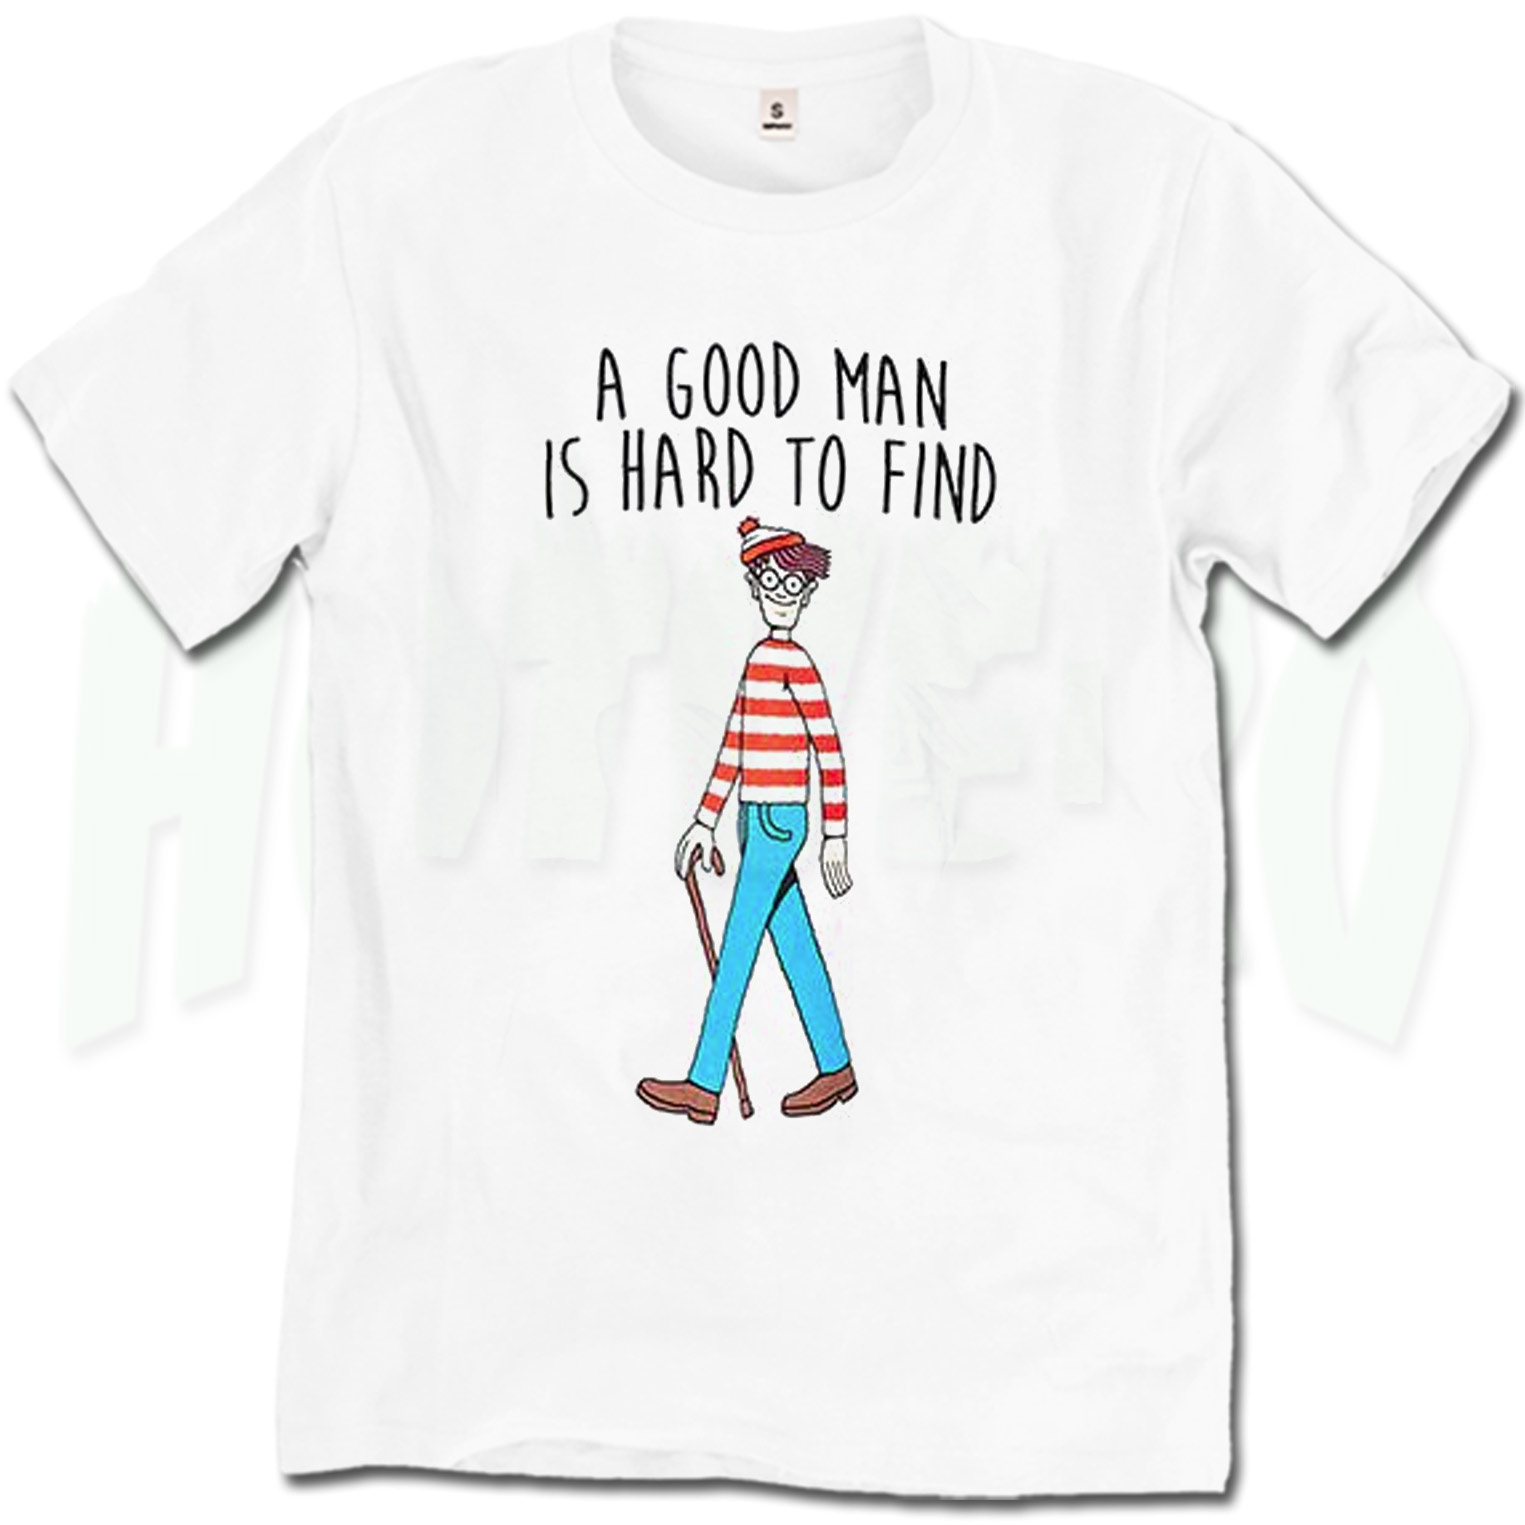 the good man is hard to find